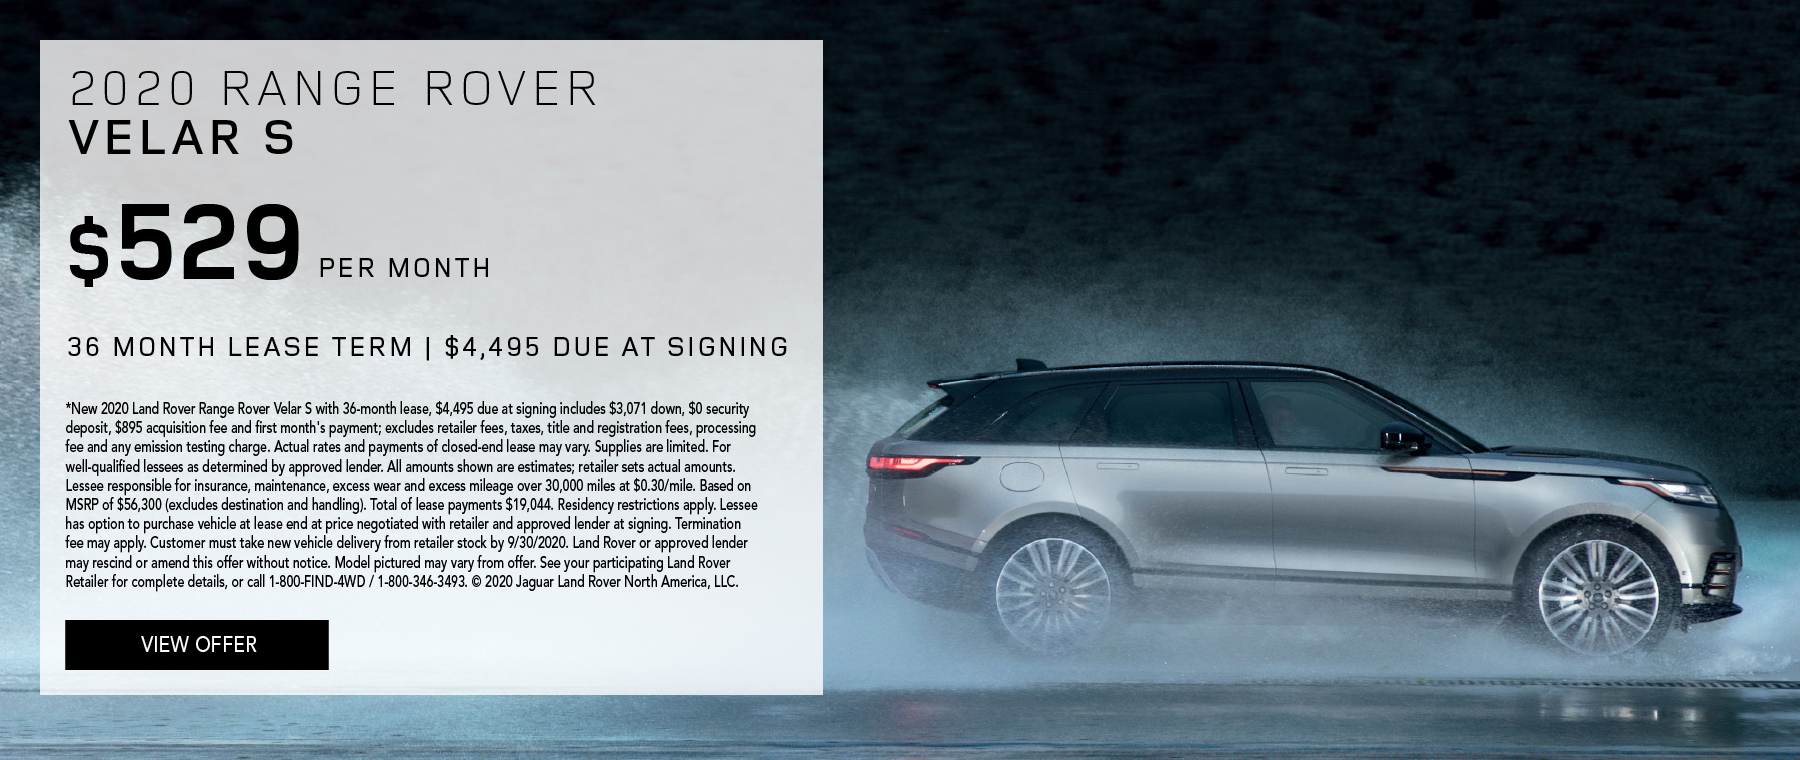 2020 RANGE ROVER VELAR S. $529 PER MONTH. 36 MONTH LEASE TERM. $4,495 CASH DUE AT SIGNING. $0 SECURITY DEPOSIT. 10,000 MILES PER YEAR. EXCLUDES RETAILER FEES, TAXES, TITLE AND REGISTRATION FEES, PROCESSING FEE AND ANY EMISSION TESTING CHARGE. ENDS 9/30/2020.